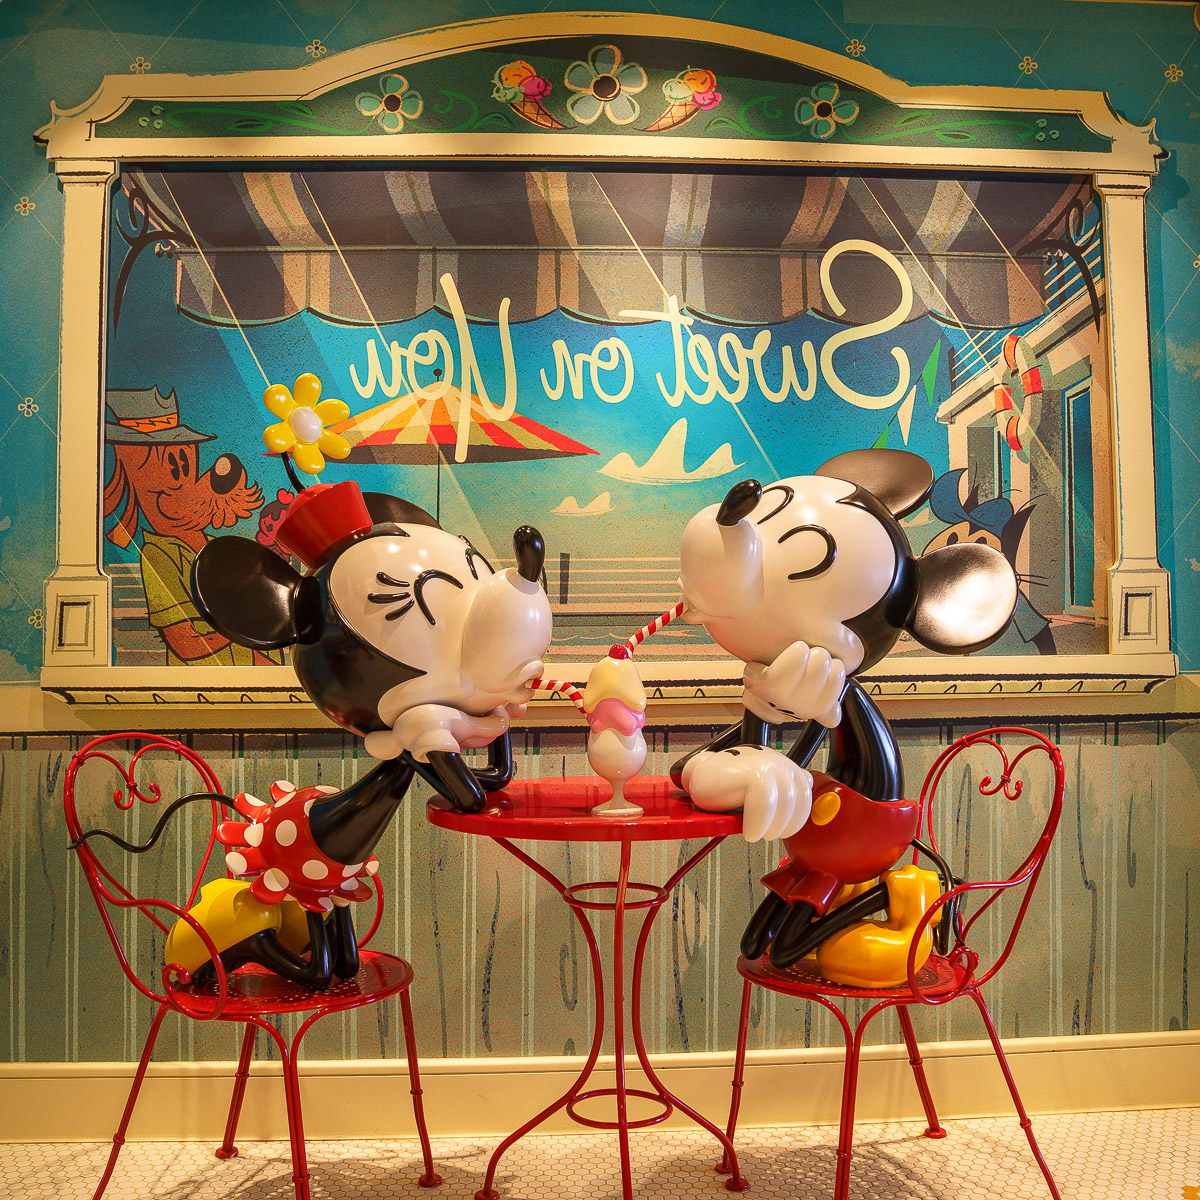 Top 10 Things to Do on Disney Fantasy featured by top US Disney blogger, Marcie and the Mouse: Sweet on You ice cream shop on Disney Fantasy cruise ship